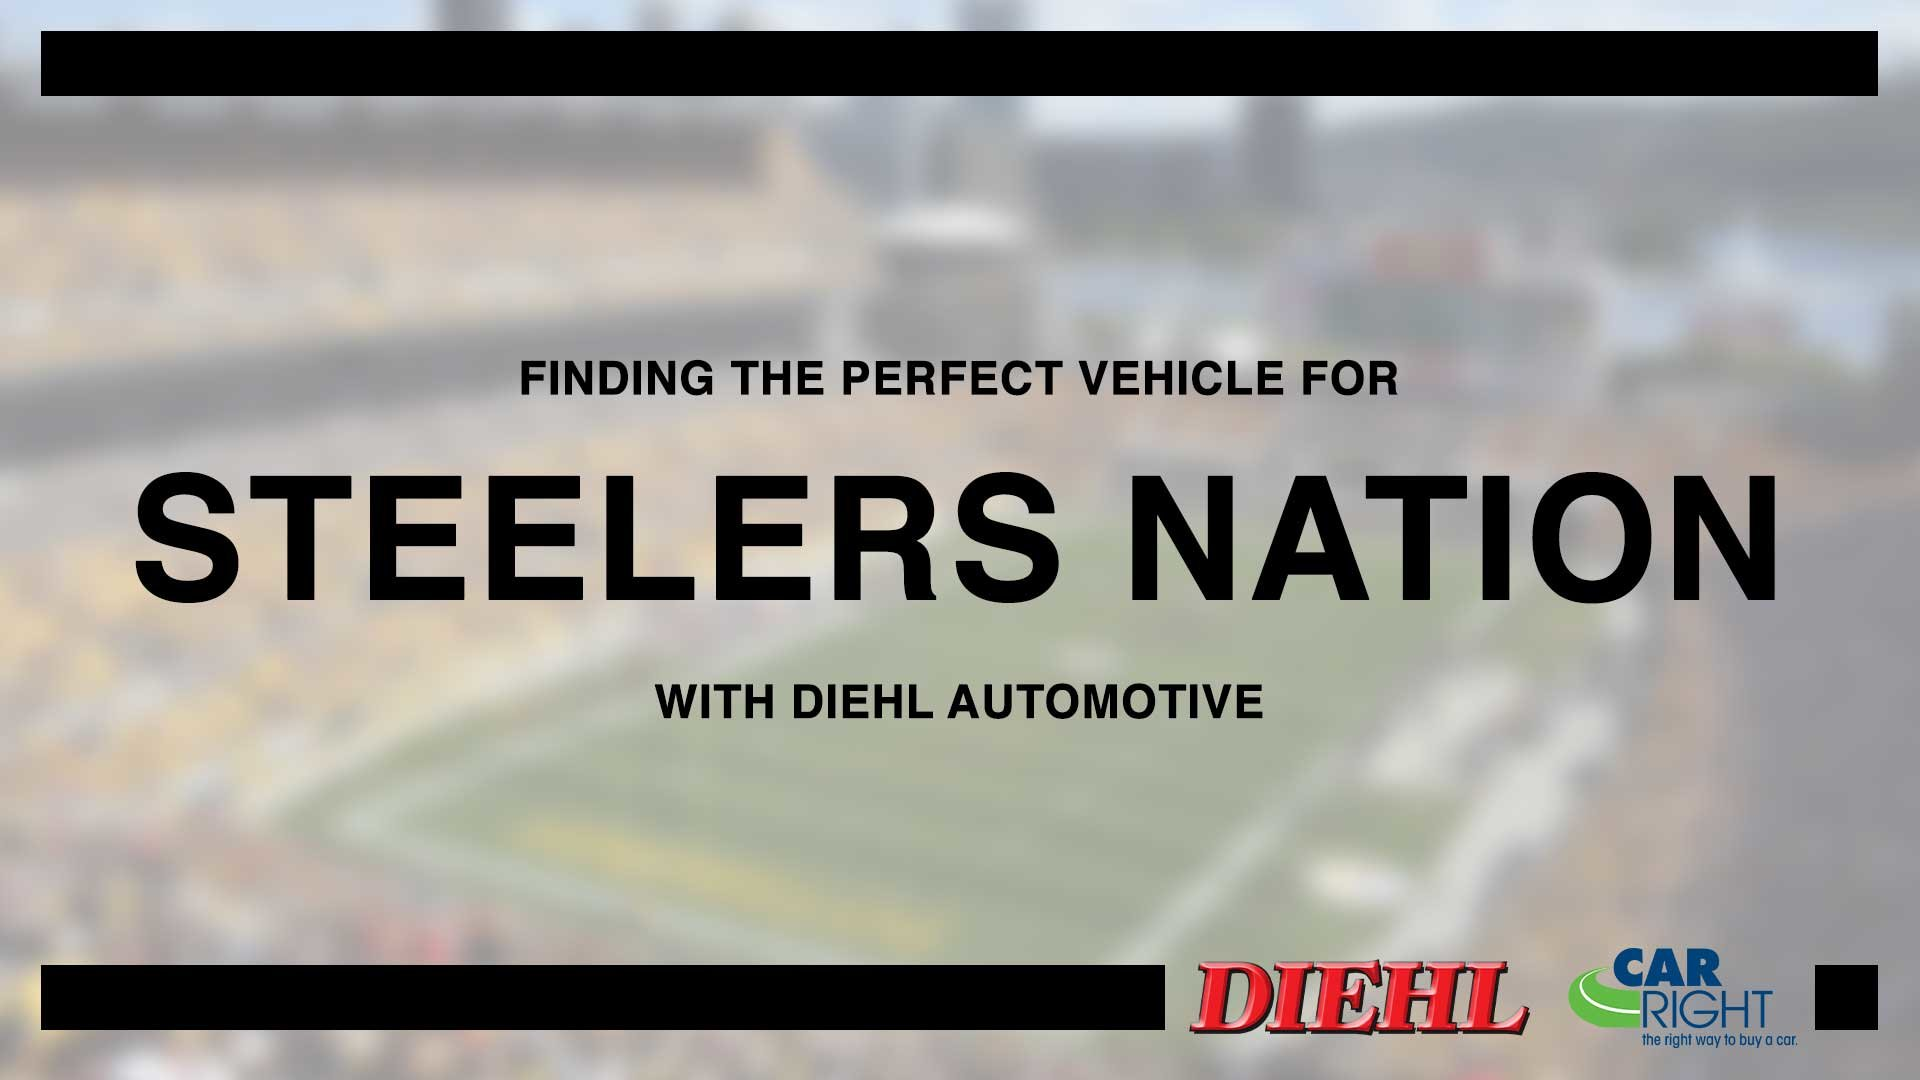 steelers nation pittsburgh western pa diehl automotive carright chrysler dodge jeep ram chevrolet buick cadillac volkswagen toyota mitsubishi